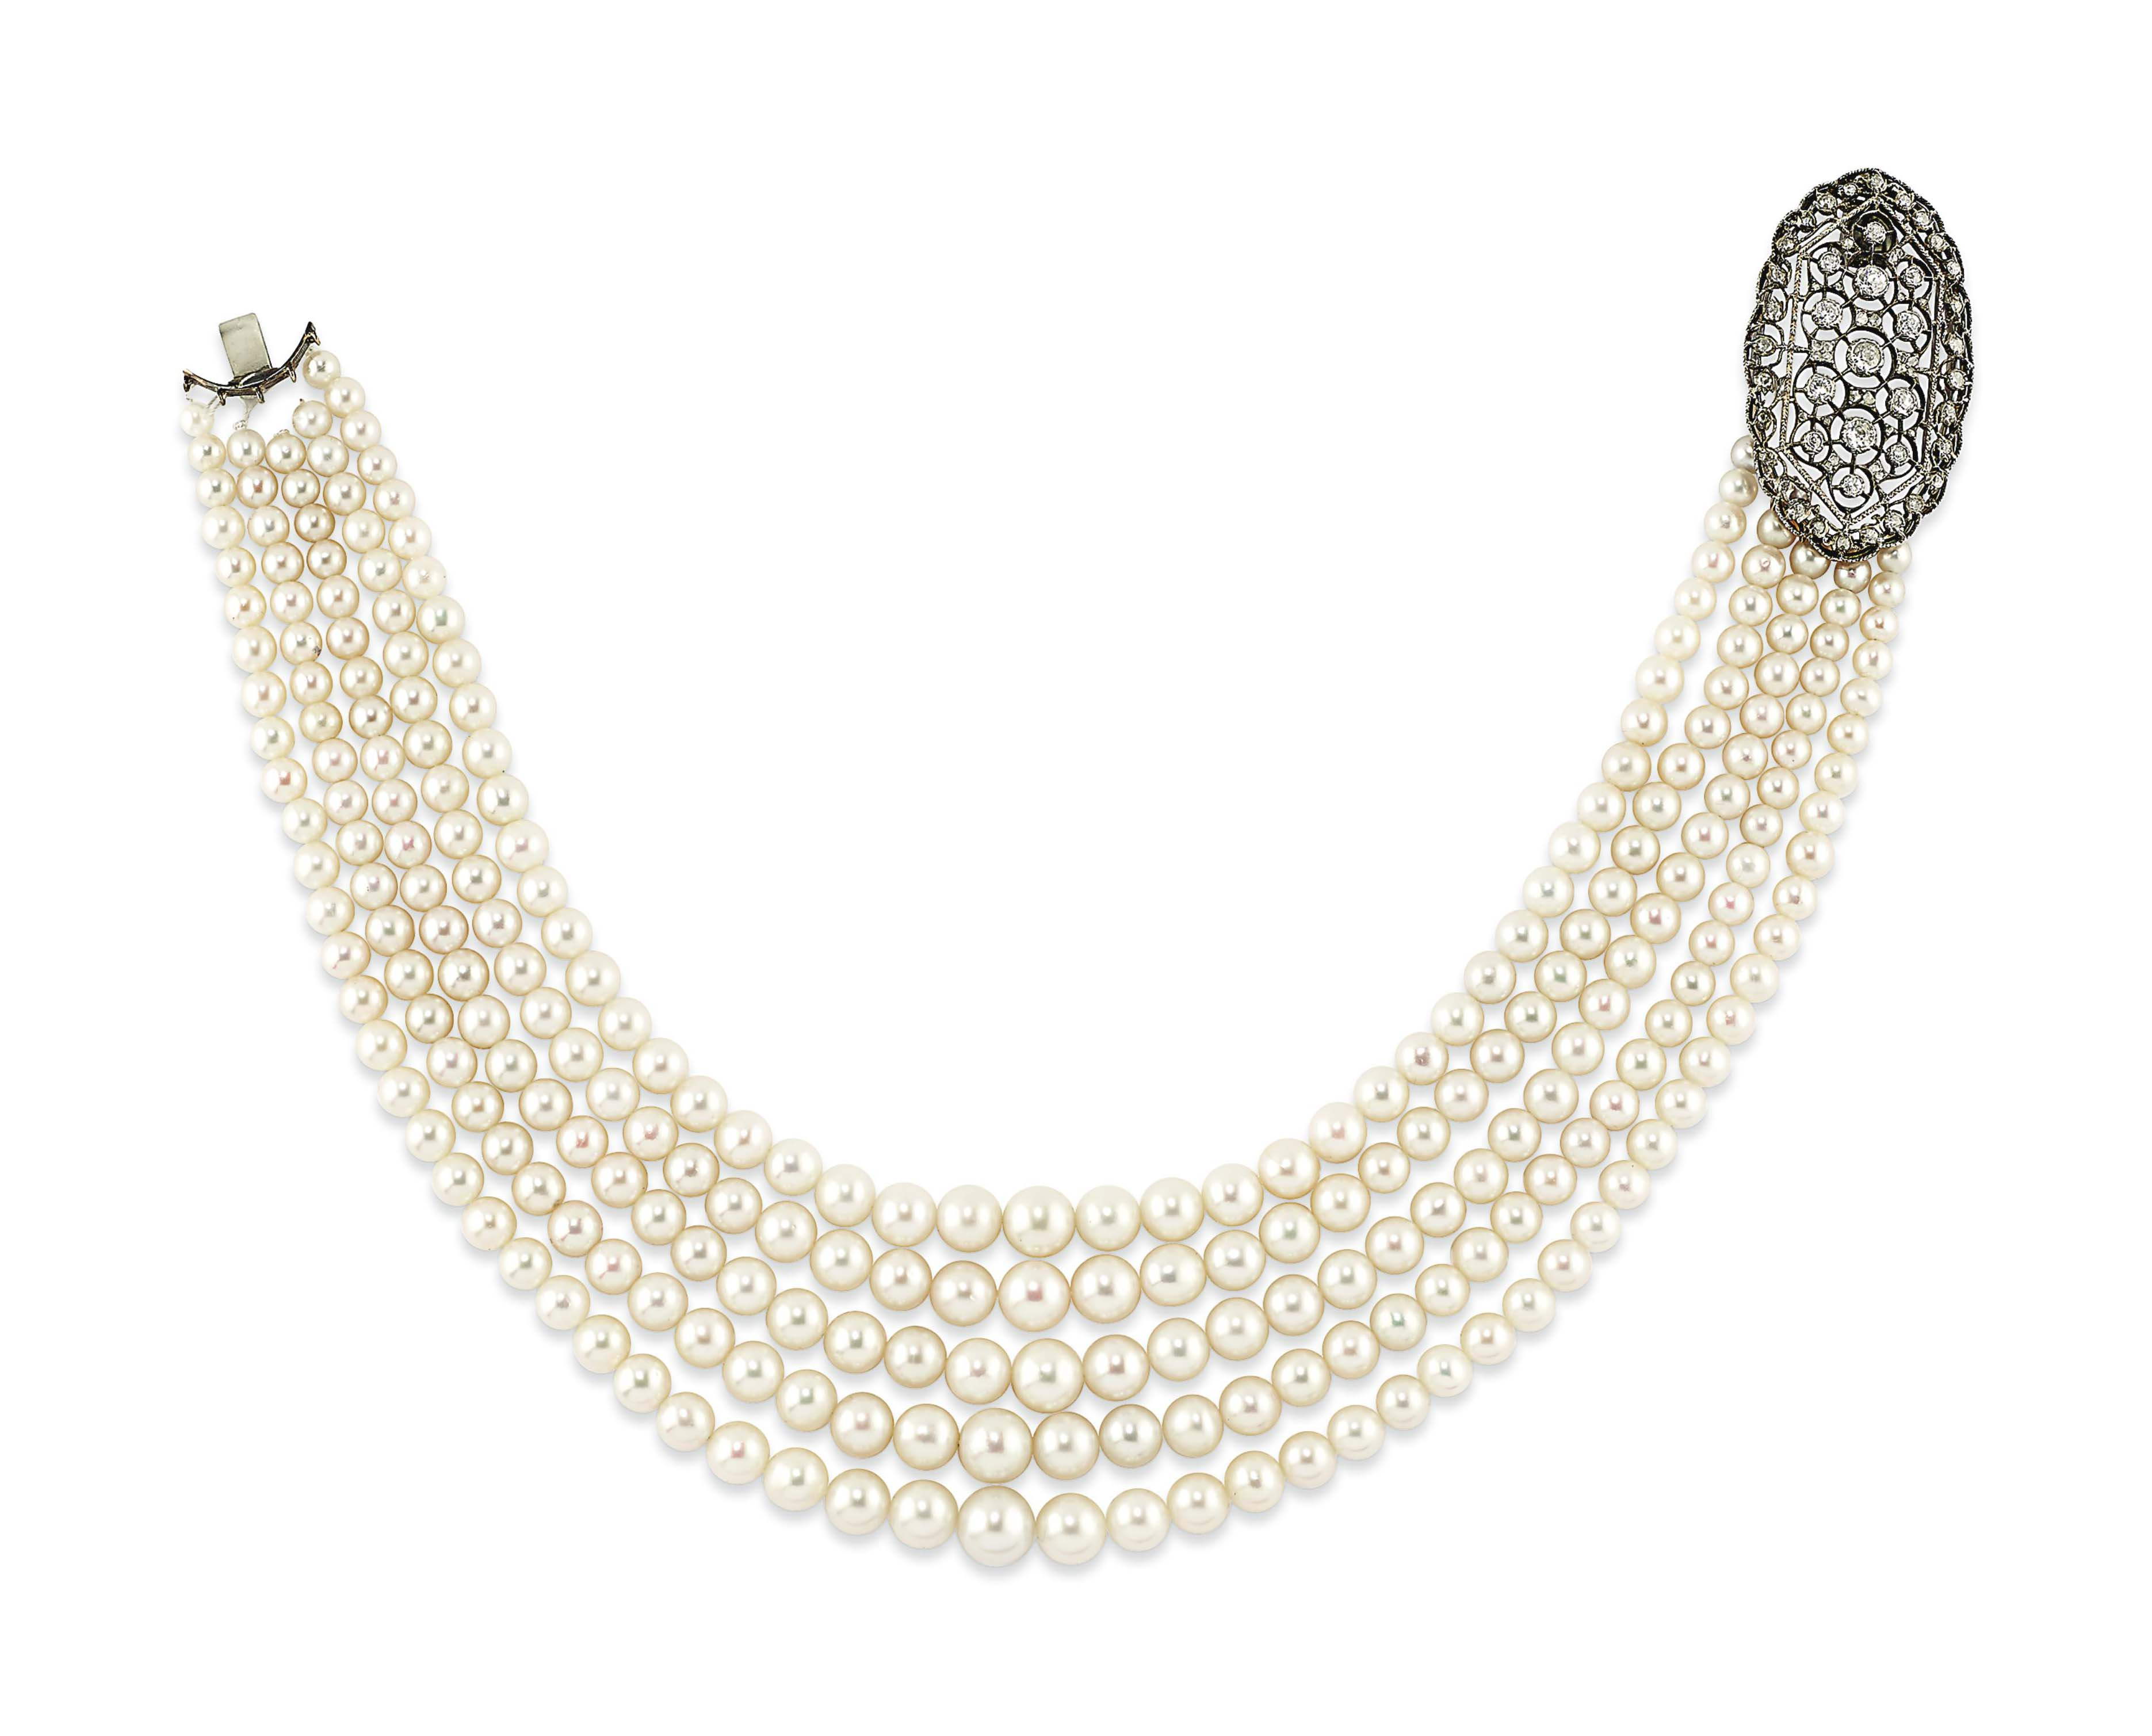 A NATURAL PEARL AND DIAMOND NECKLACE, BY BUCCELLATI